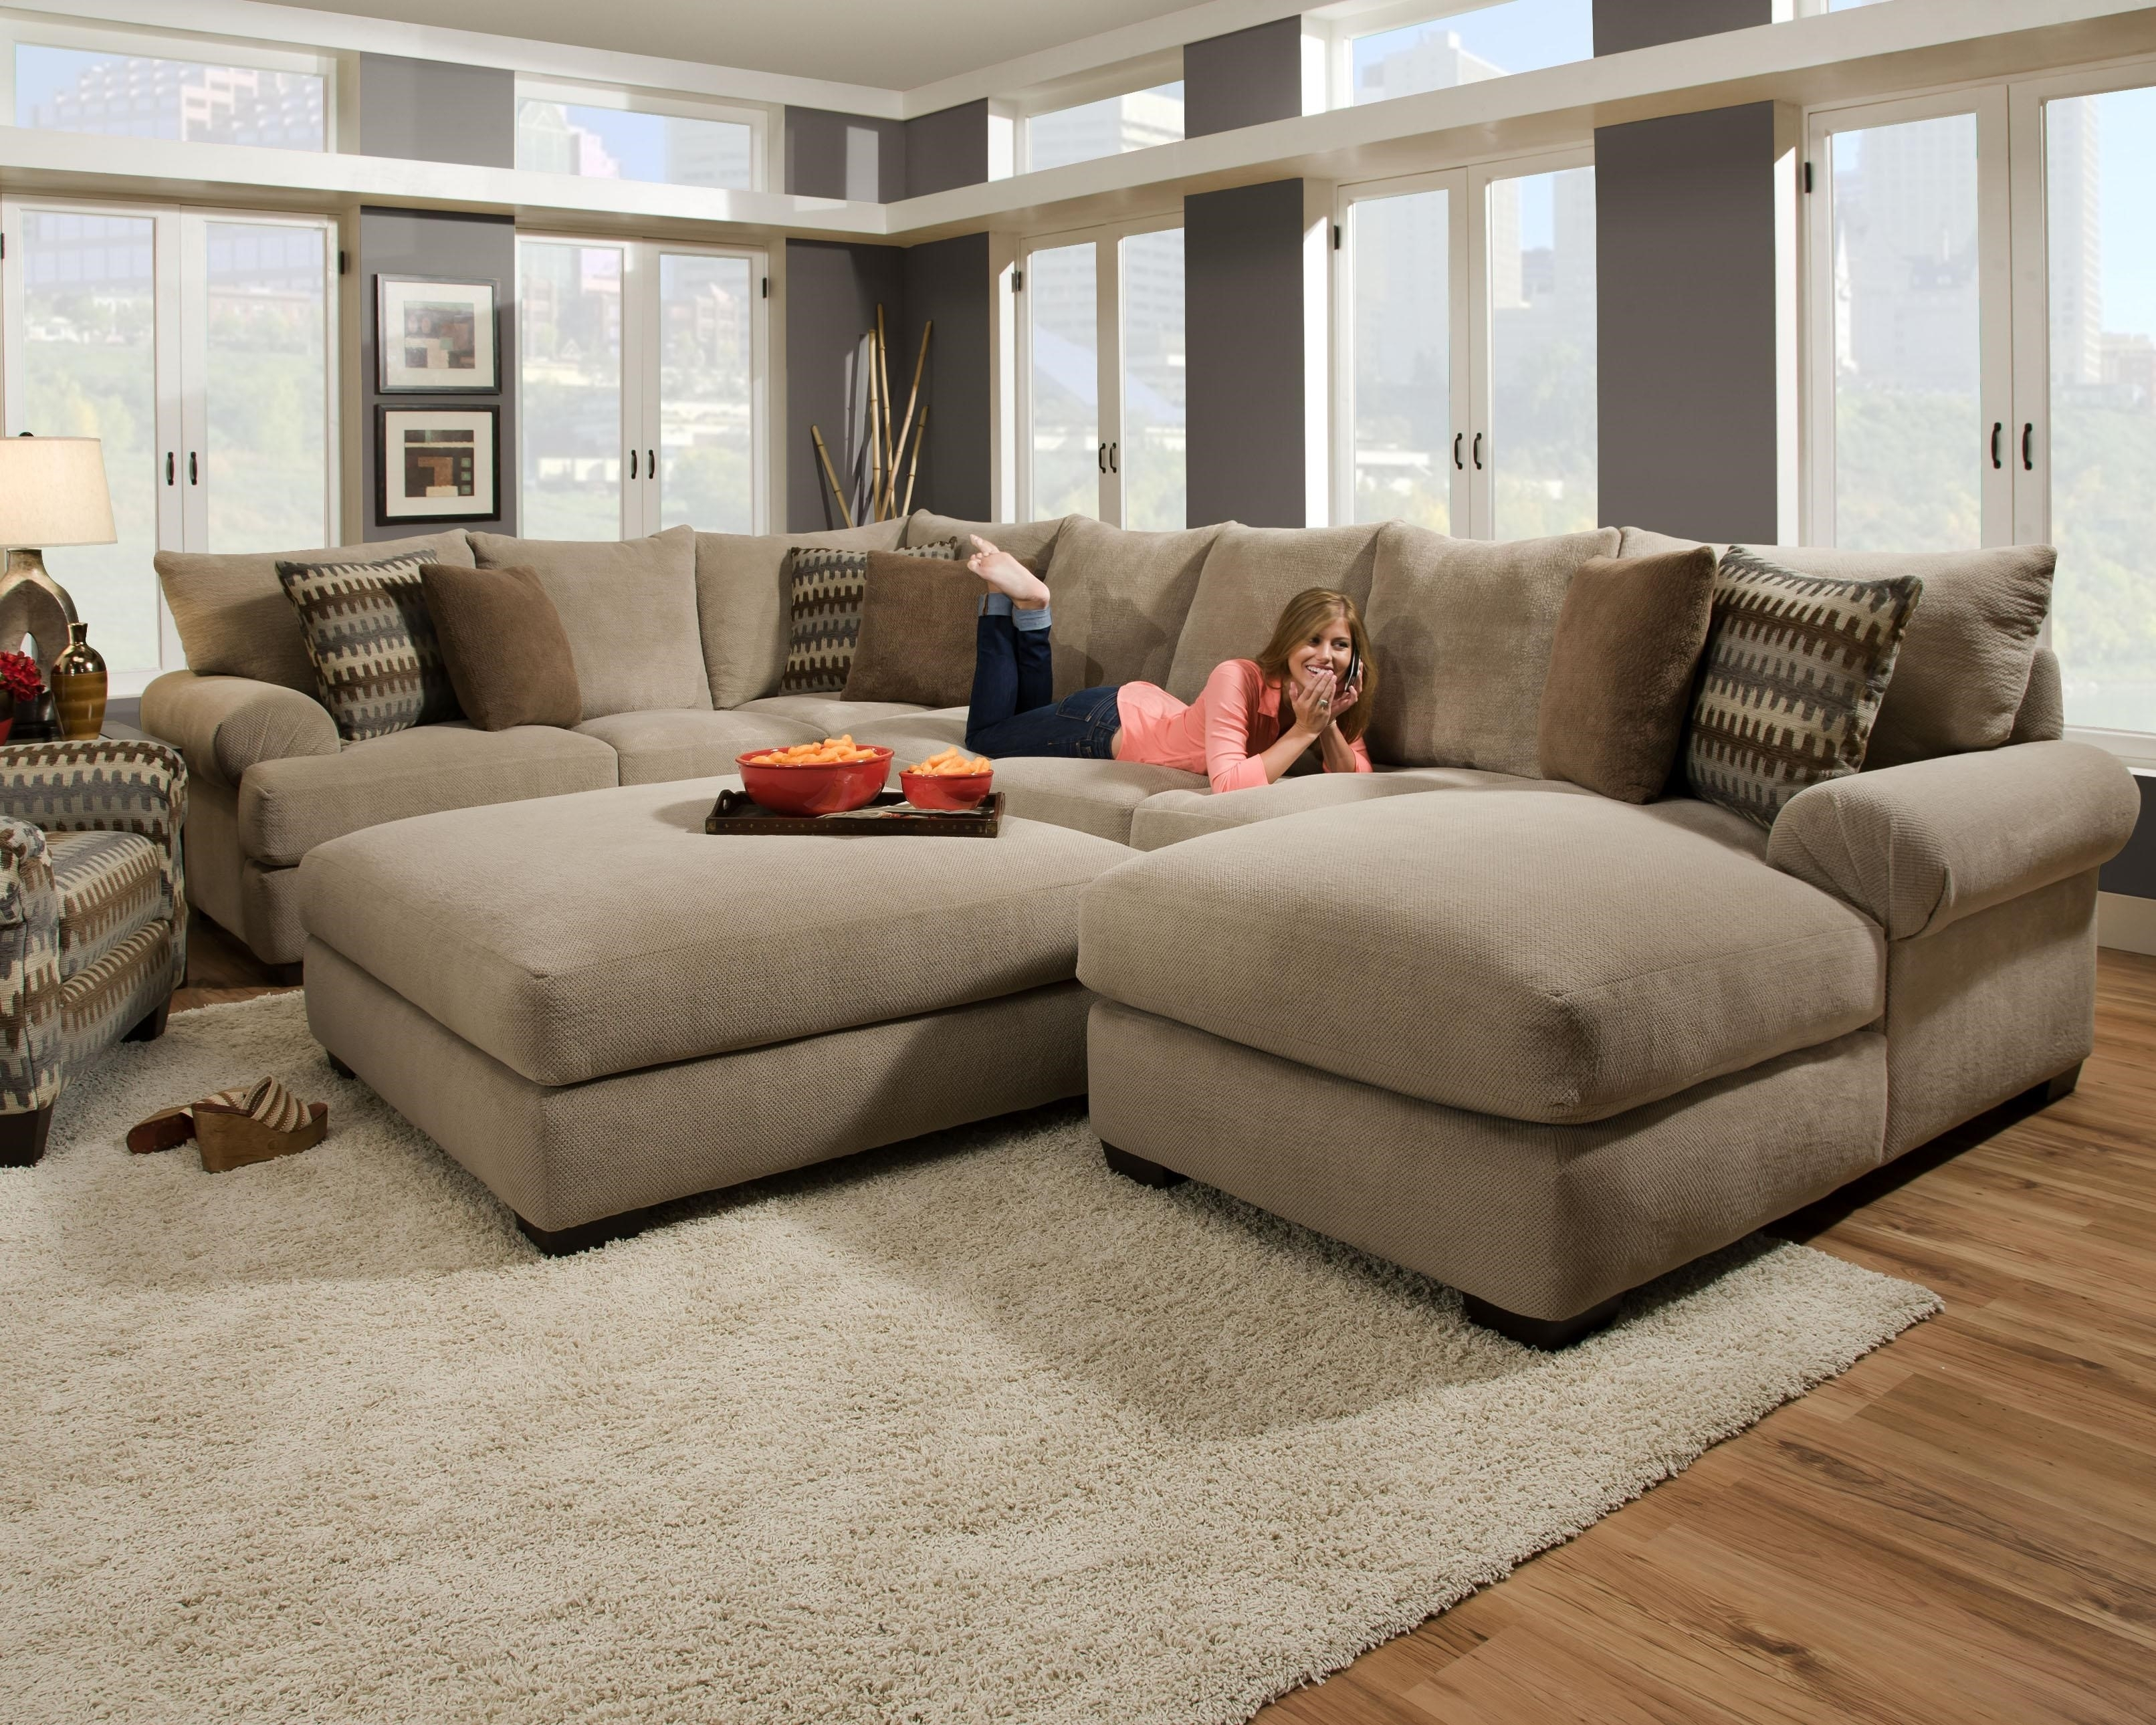 Cheap Sectional Sofas Charlotte Nc | Functionalities With Sectional Sofas In Charlotte Nc (Image 3 of 10)